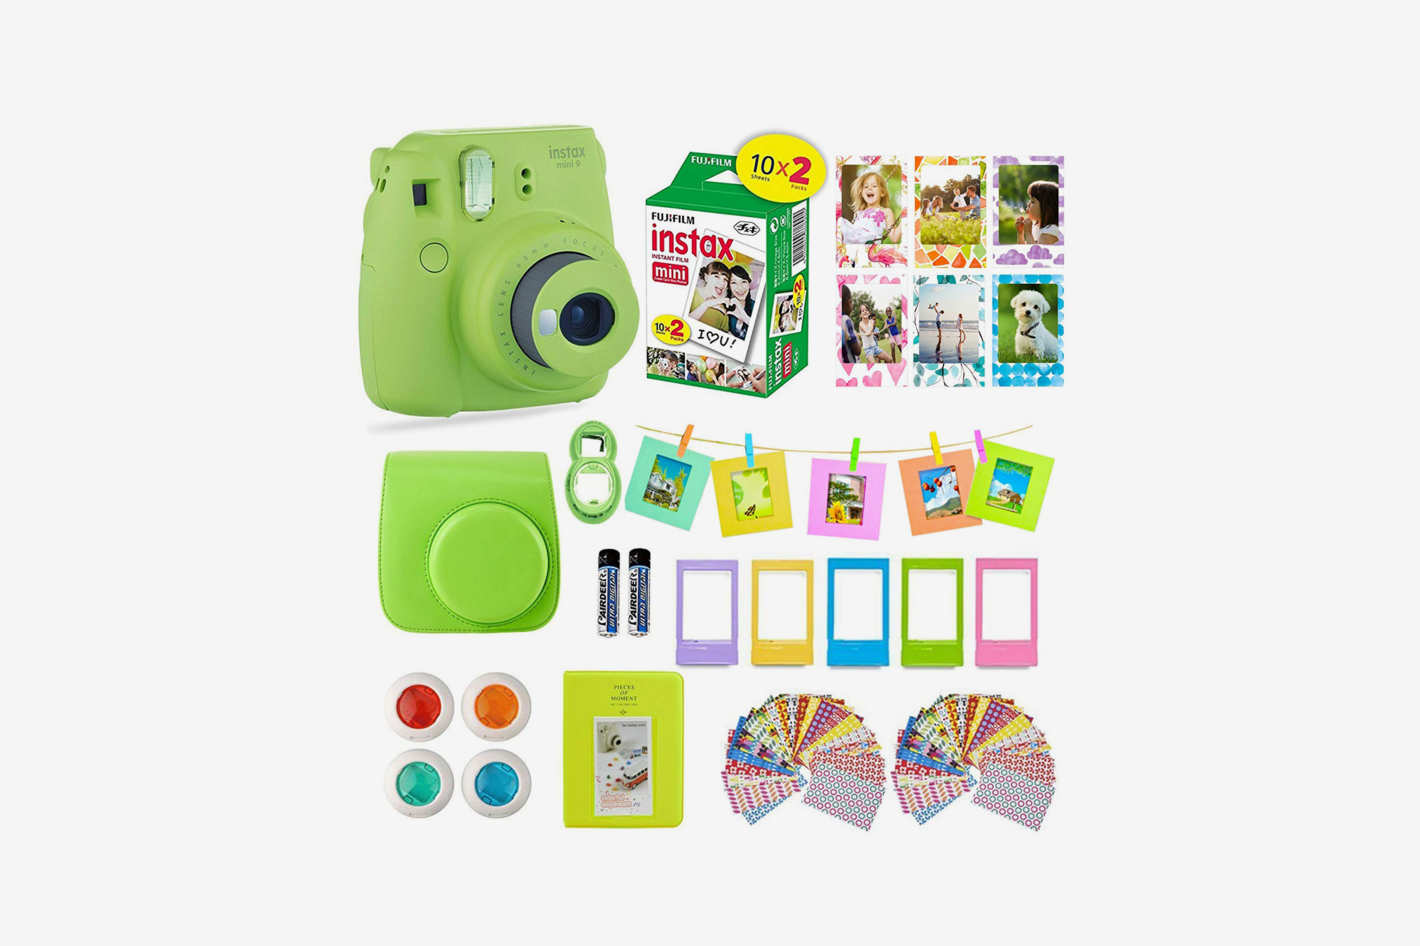 Fujifilm Instax Mini 9 Instant Camera + 14 Piece Instax Accessories Bundle